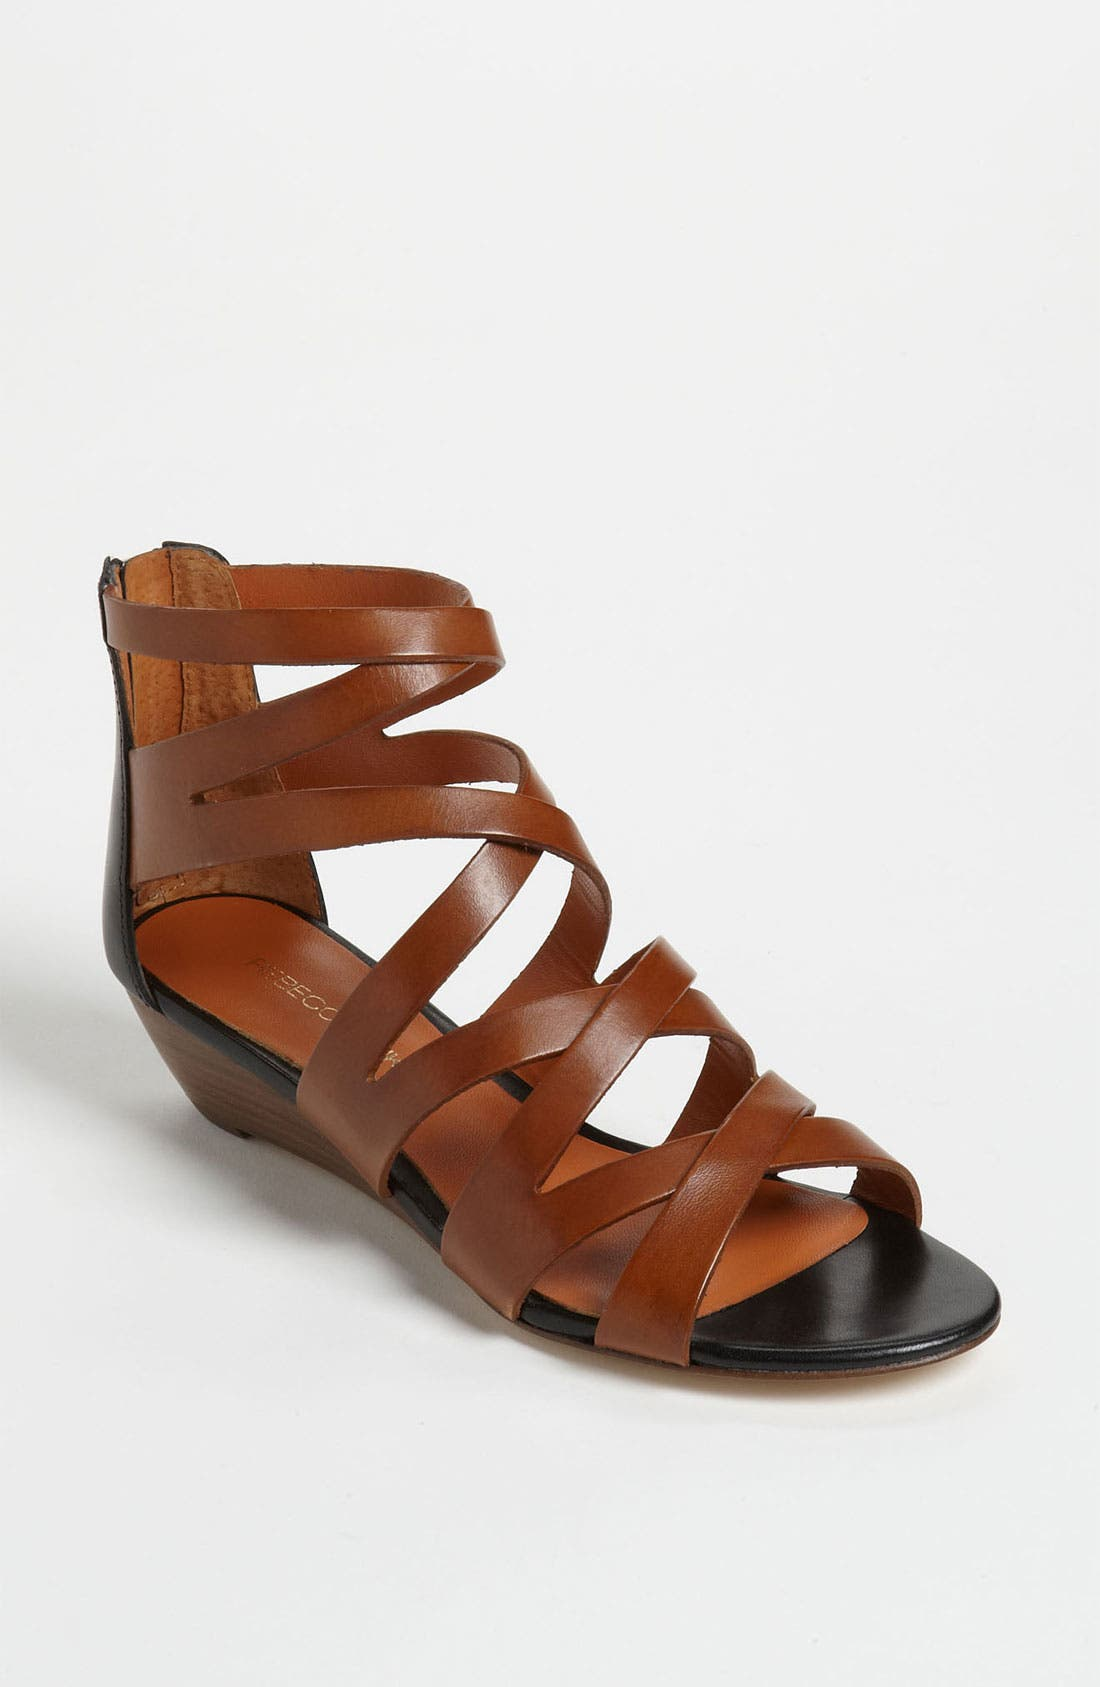 Main Image - Rebecca Minkoff 'Bonnie' Sandal (Online Exclusive)